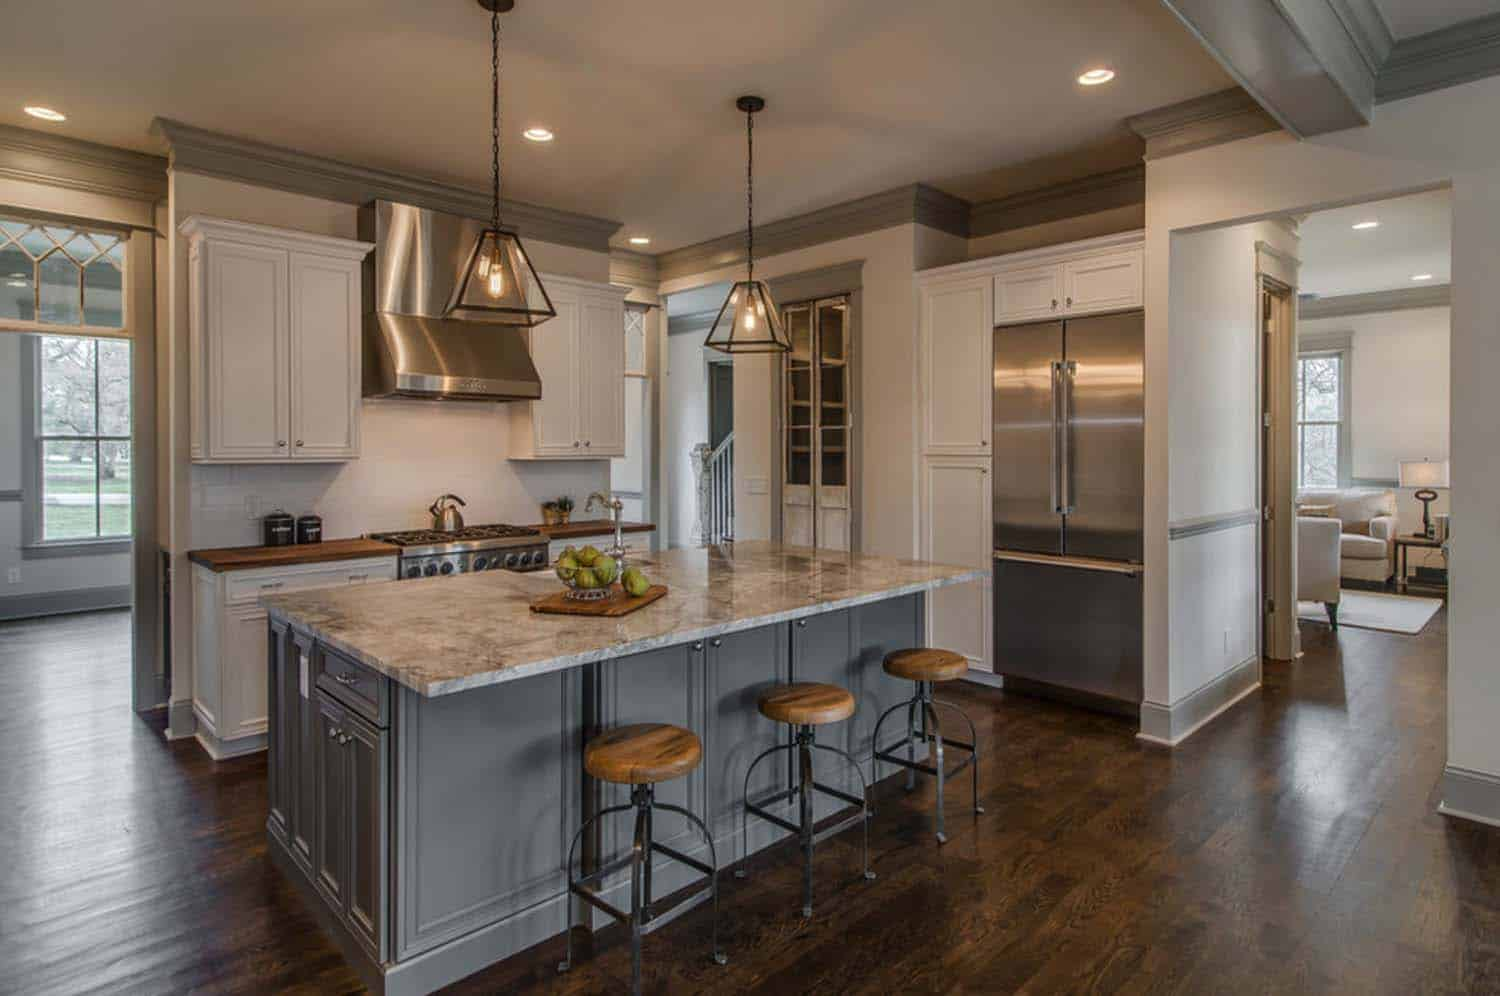 tudor kitchen remodel kid set style inspired dwelling with reclaimed barn wood in